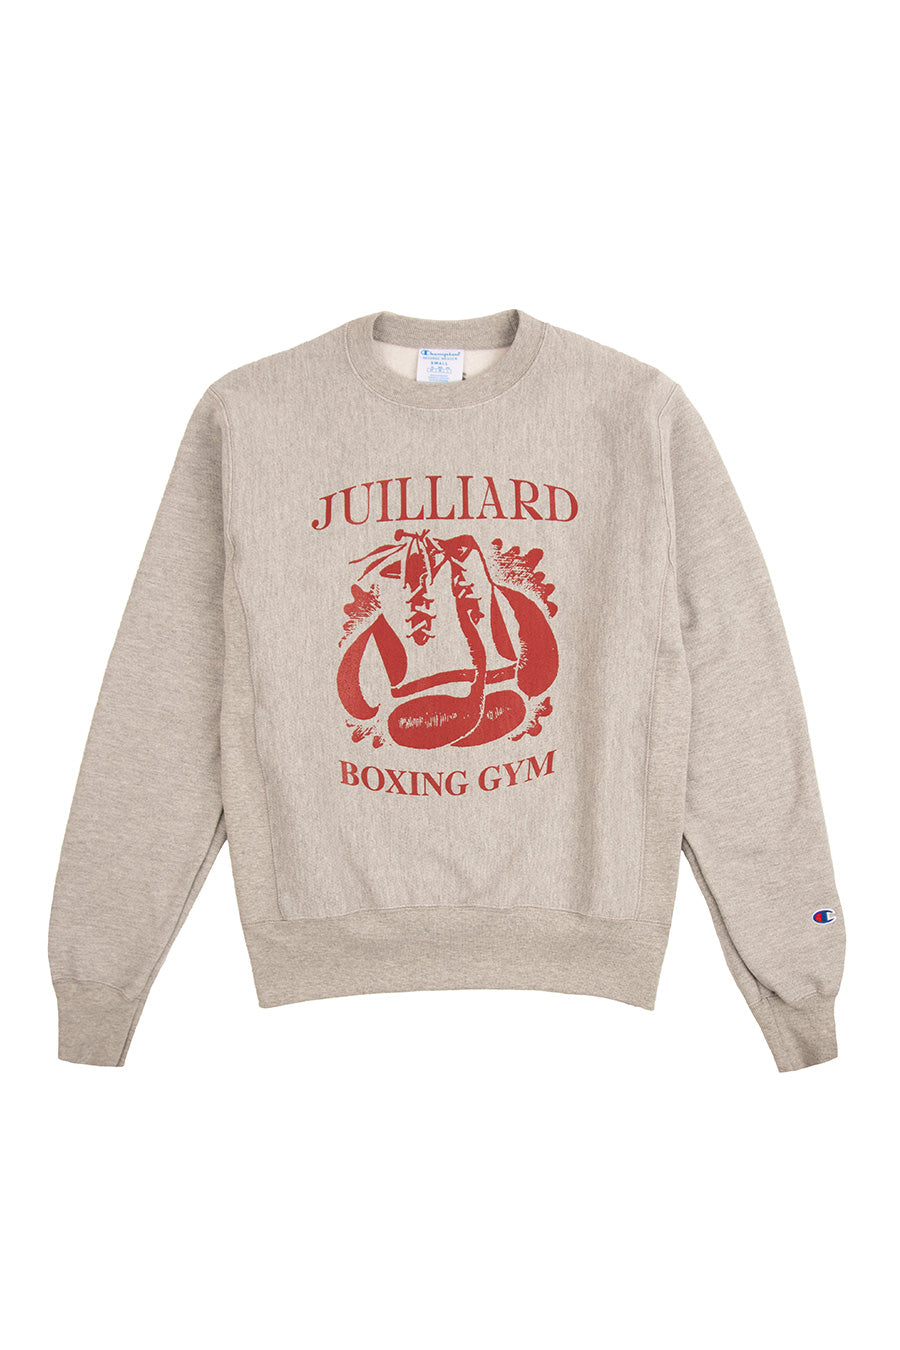 Book Works - Grey Juiliard Boxing Crewneck | 1032 SPACE